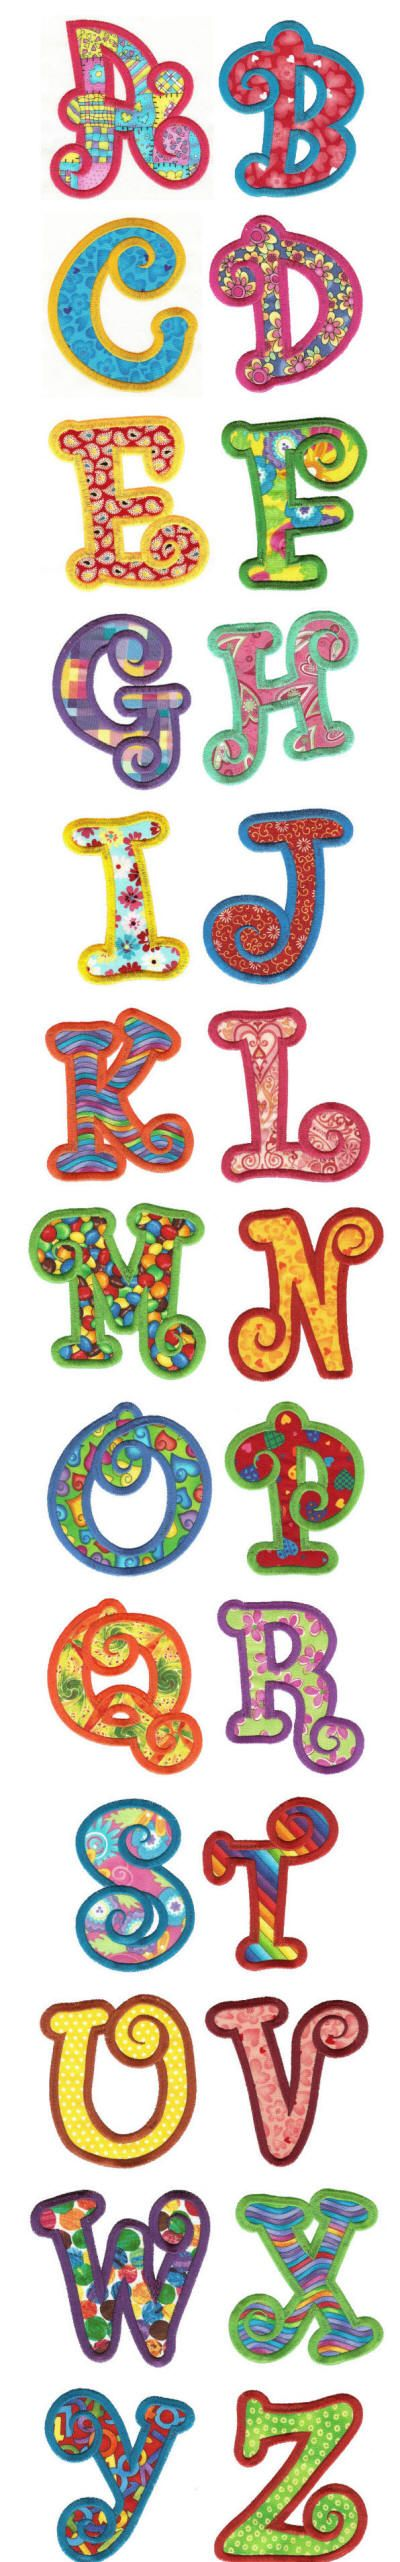 Embroidery | Machine Embroidery Designs | Chunky Curls Applique Alphabet - Designs by Juju